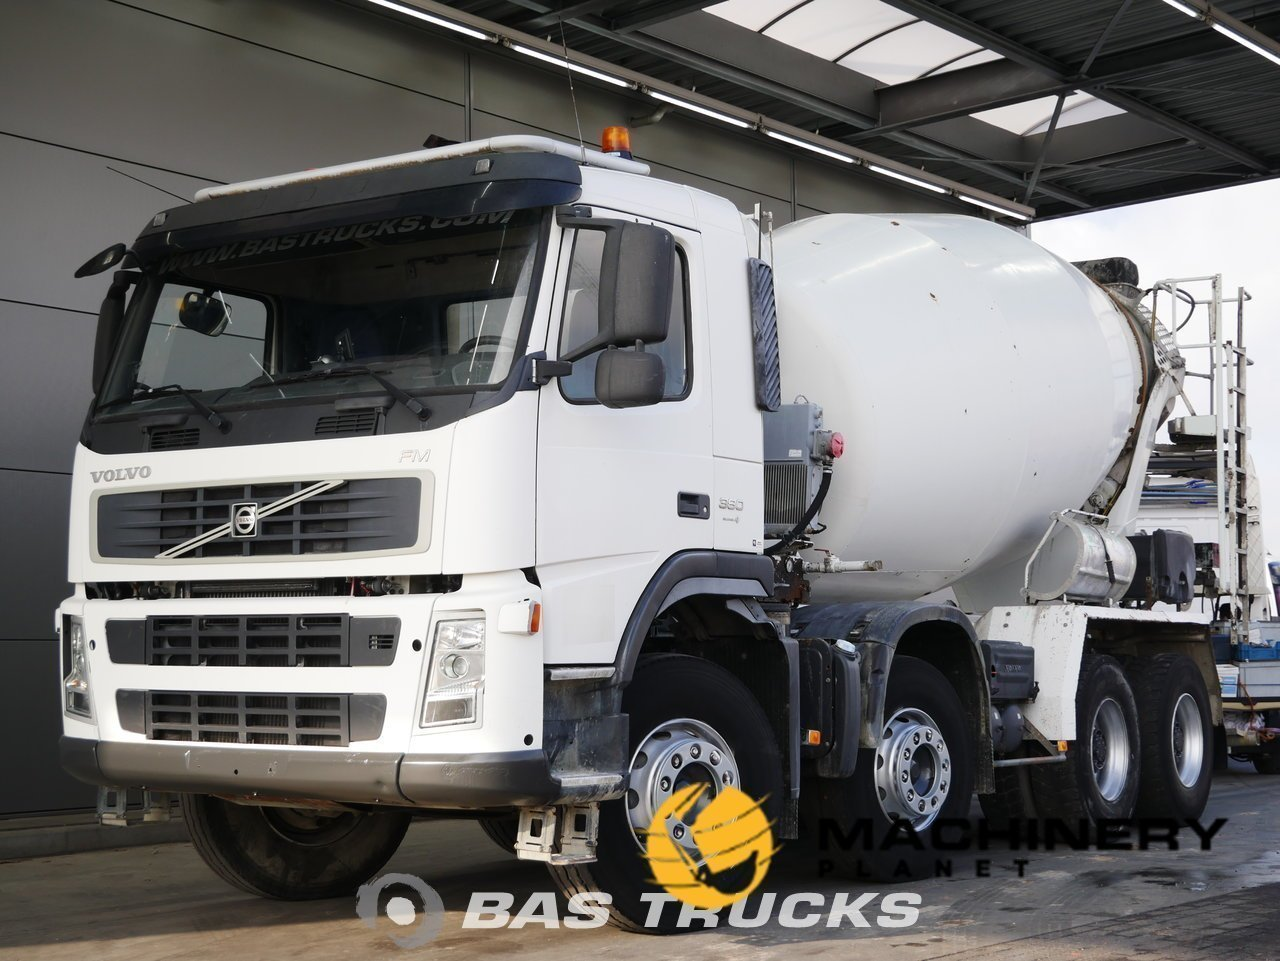 Used-Truck-Volvo-FM9-380-8X4-2007_146470_1-1554097478884_5ca1a546d7c6a-1.jpg